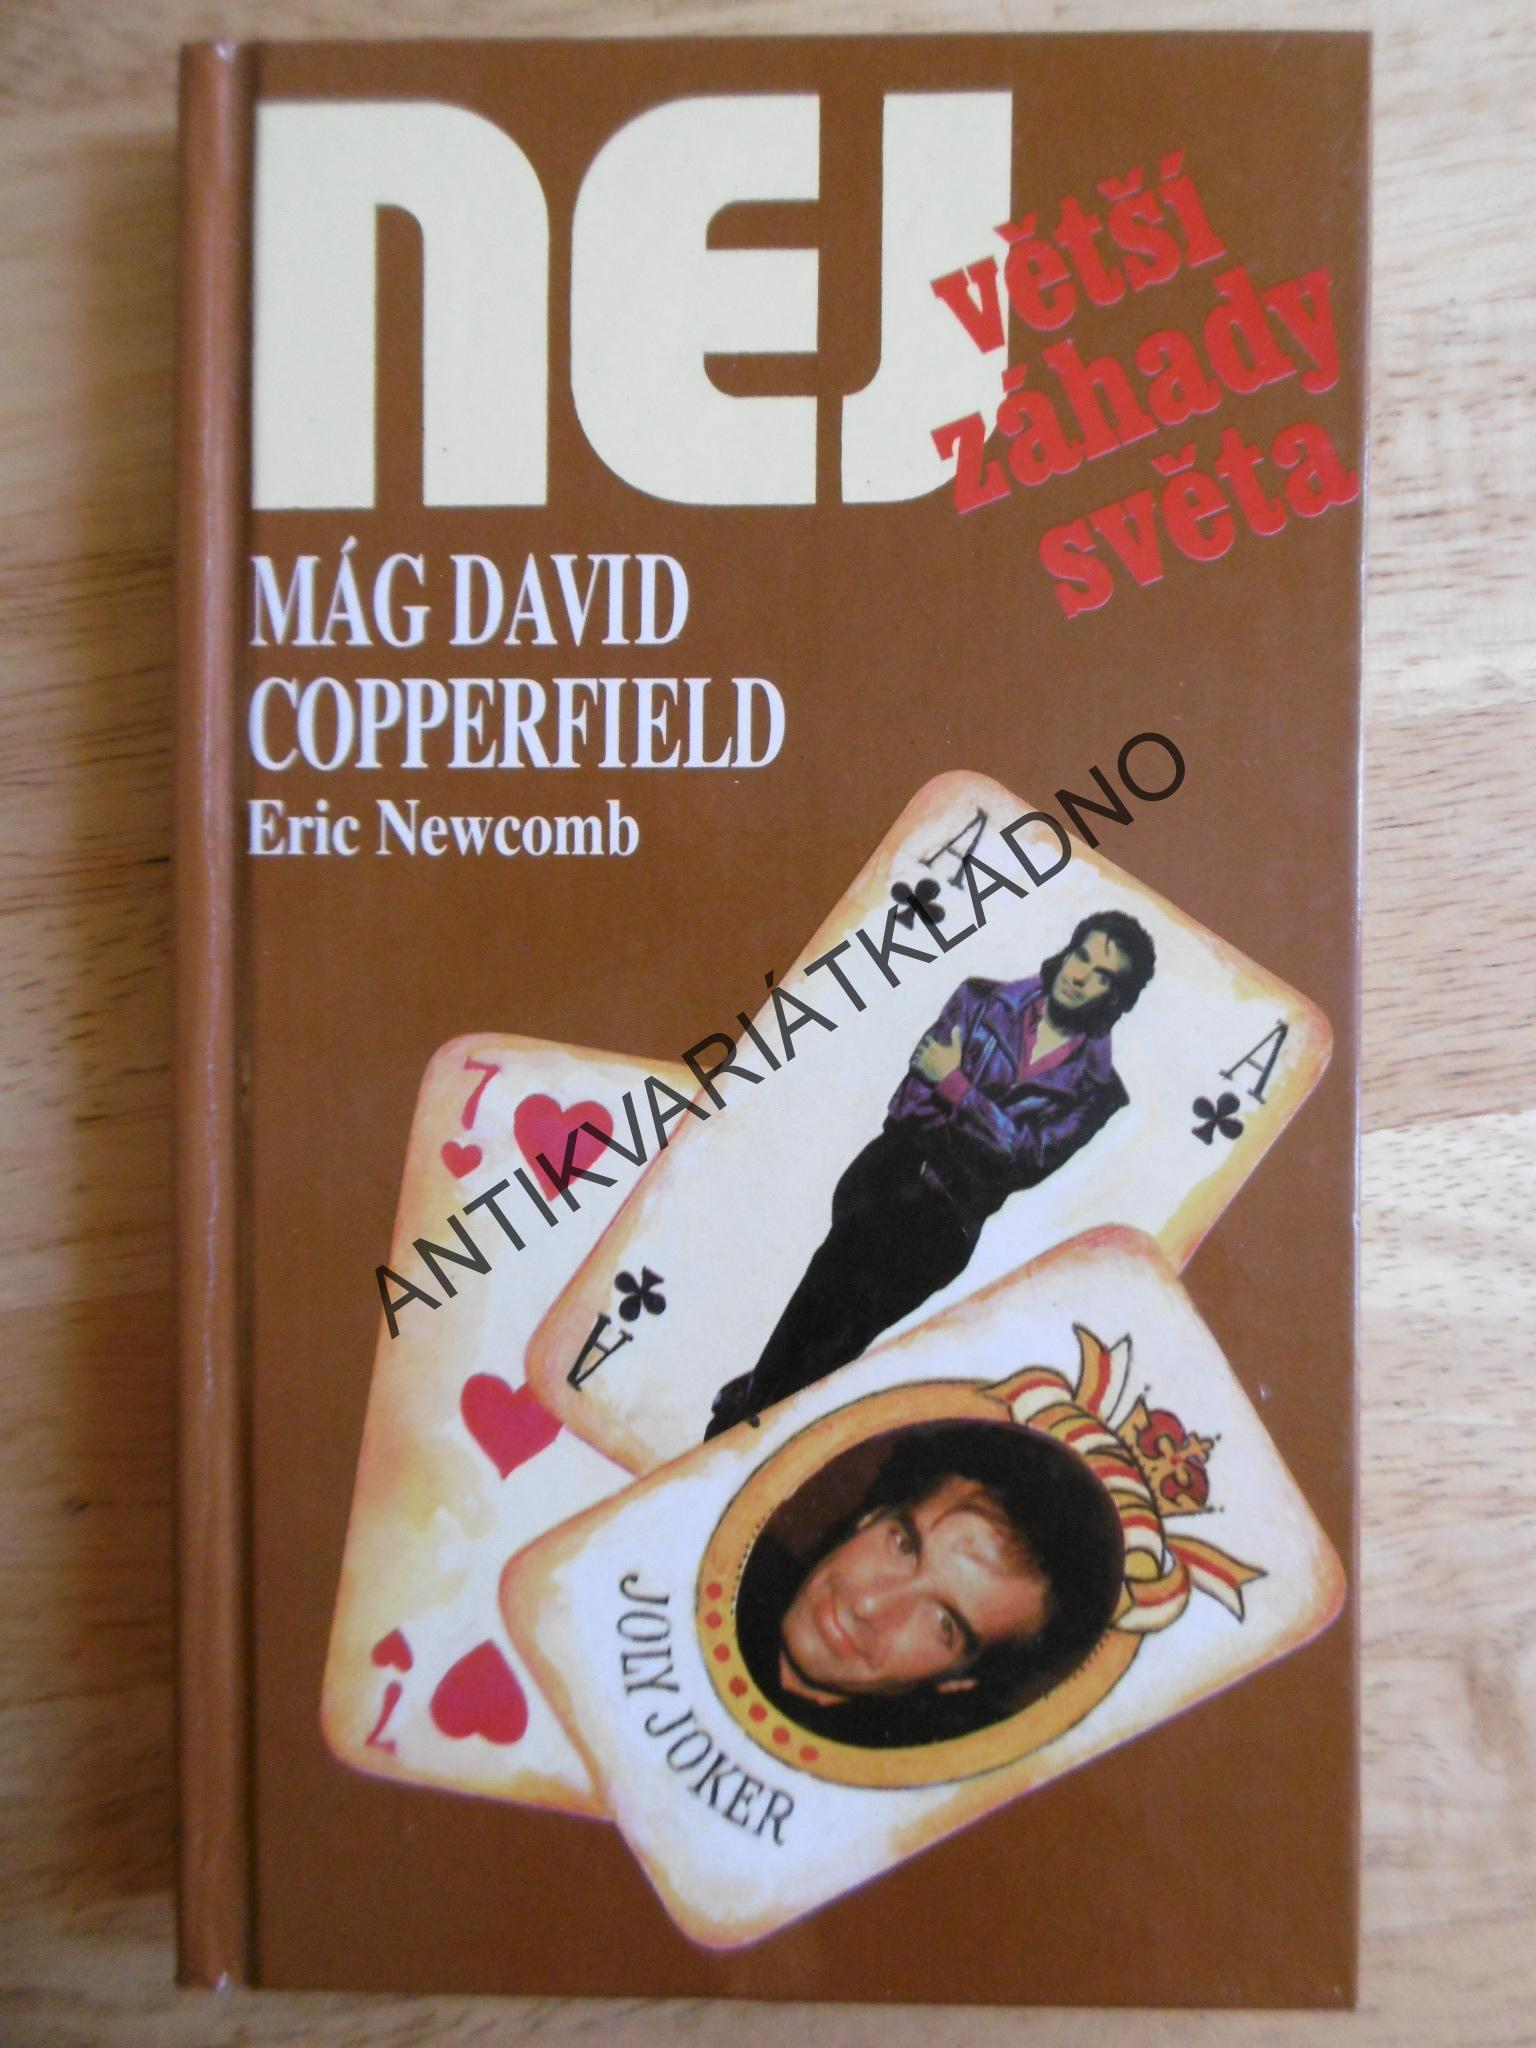 MÁG DAVID COPPERFIELD, ERIC NEWCOMB